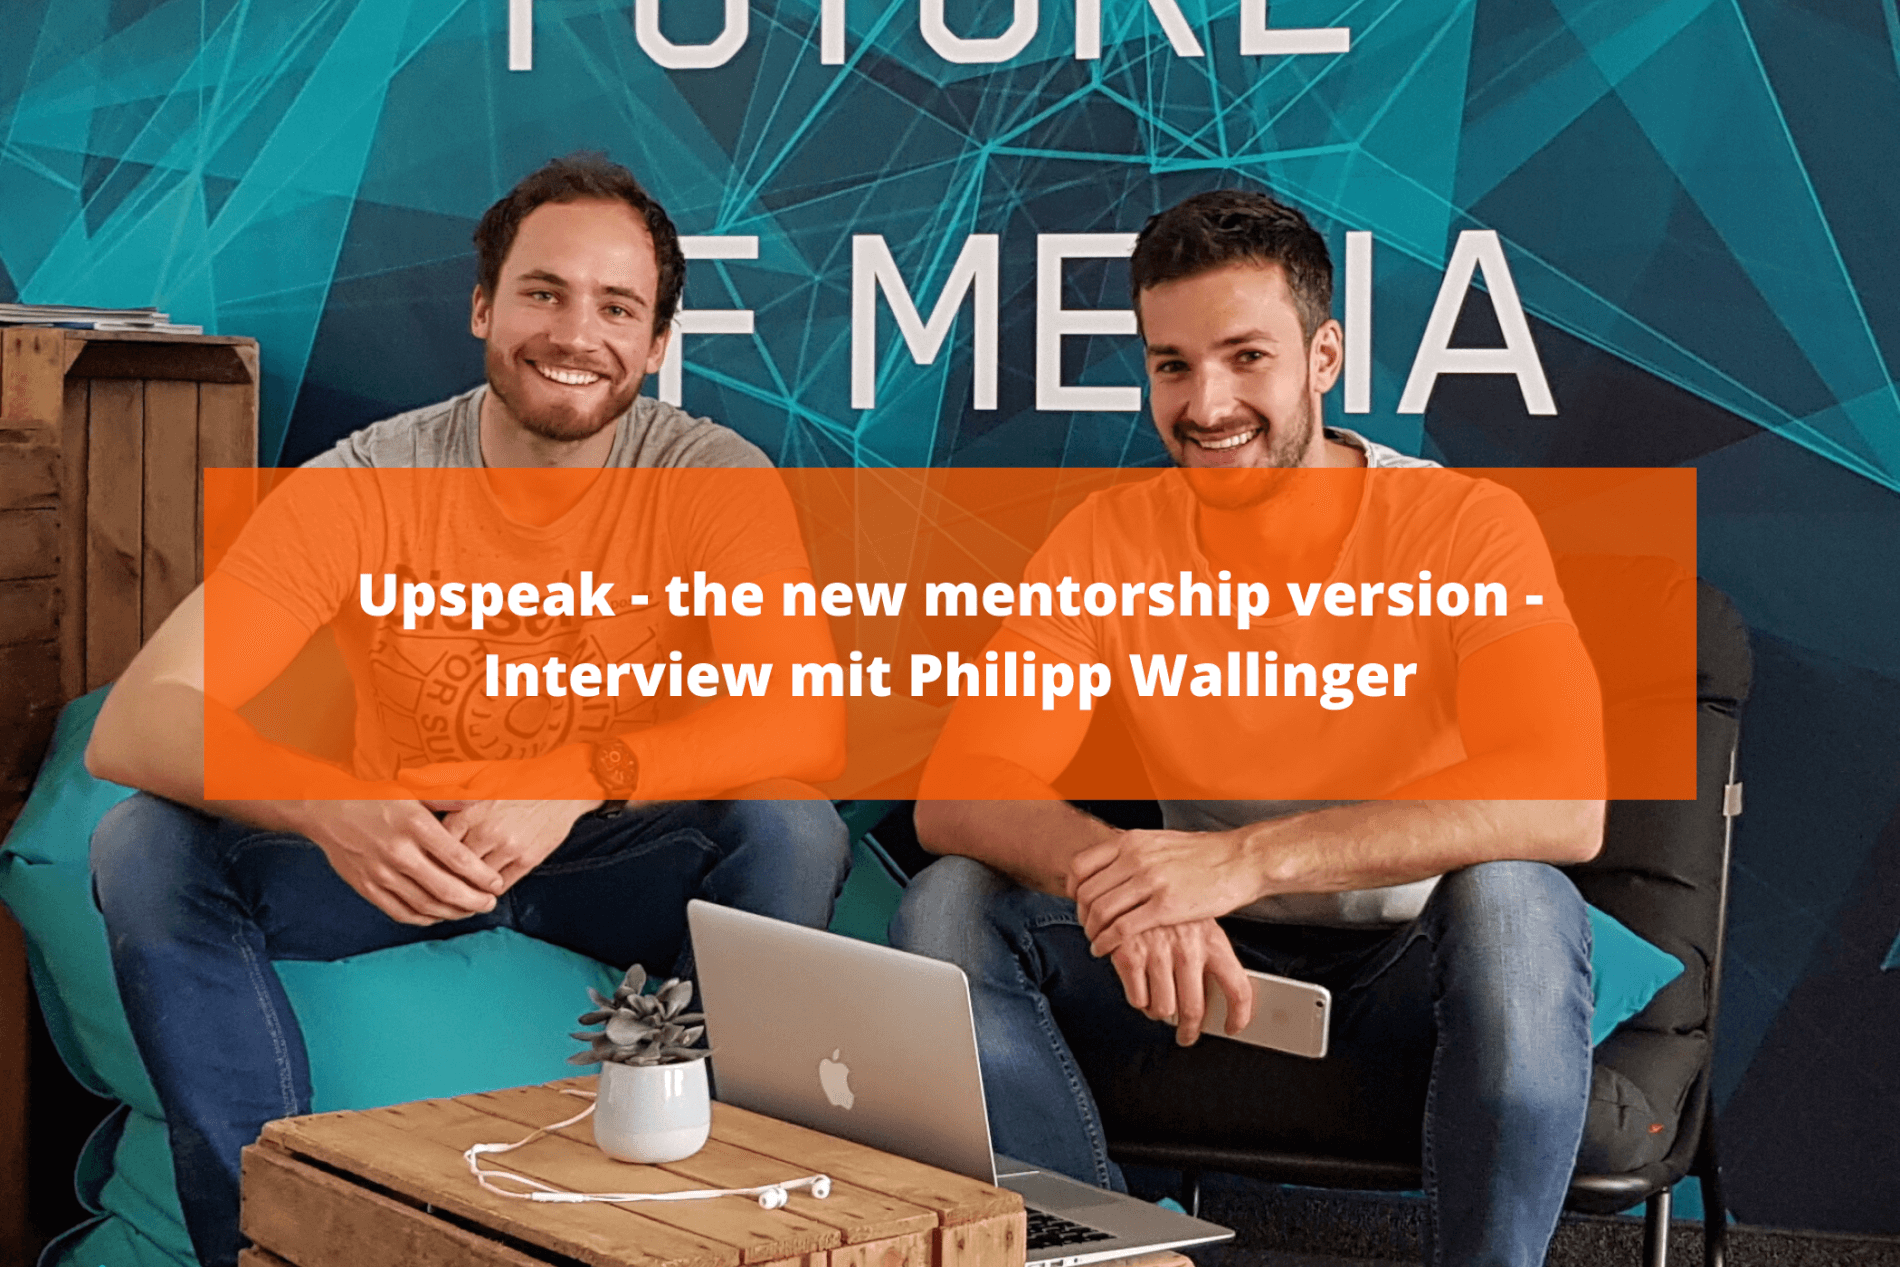 Upspeak - the new mentorship version - Interview mit Philipp Wallinger